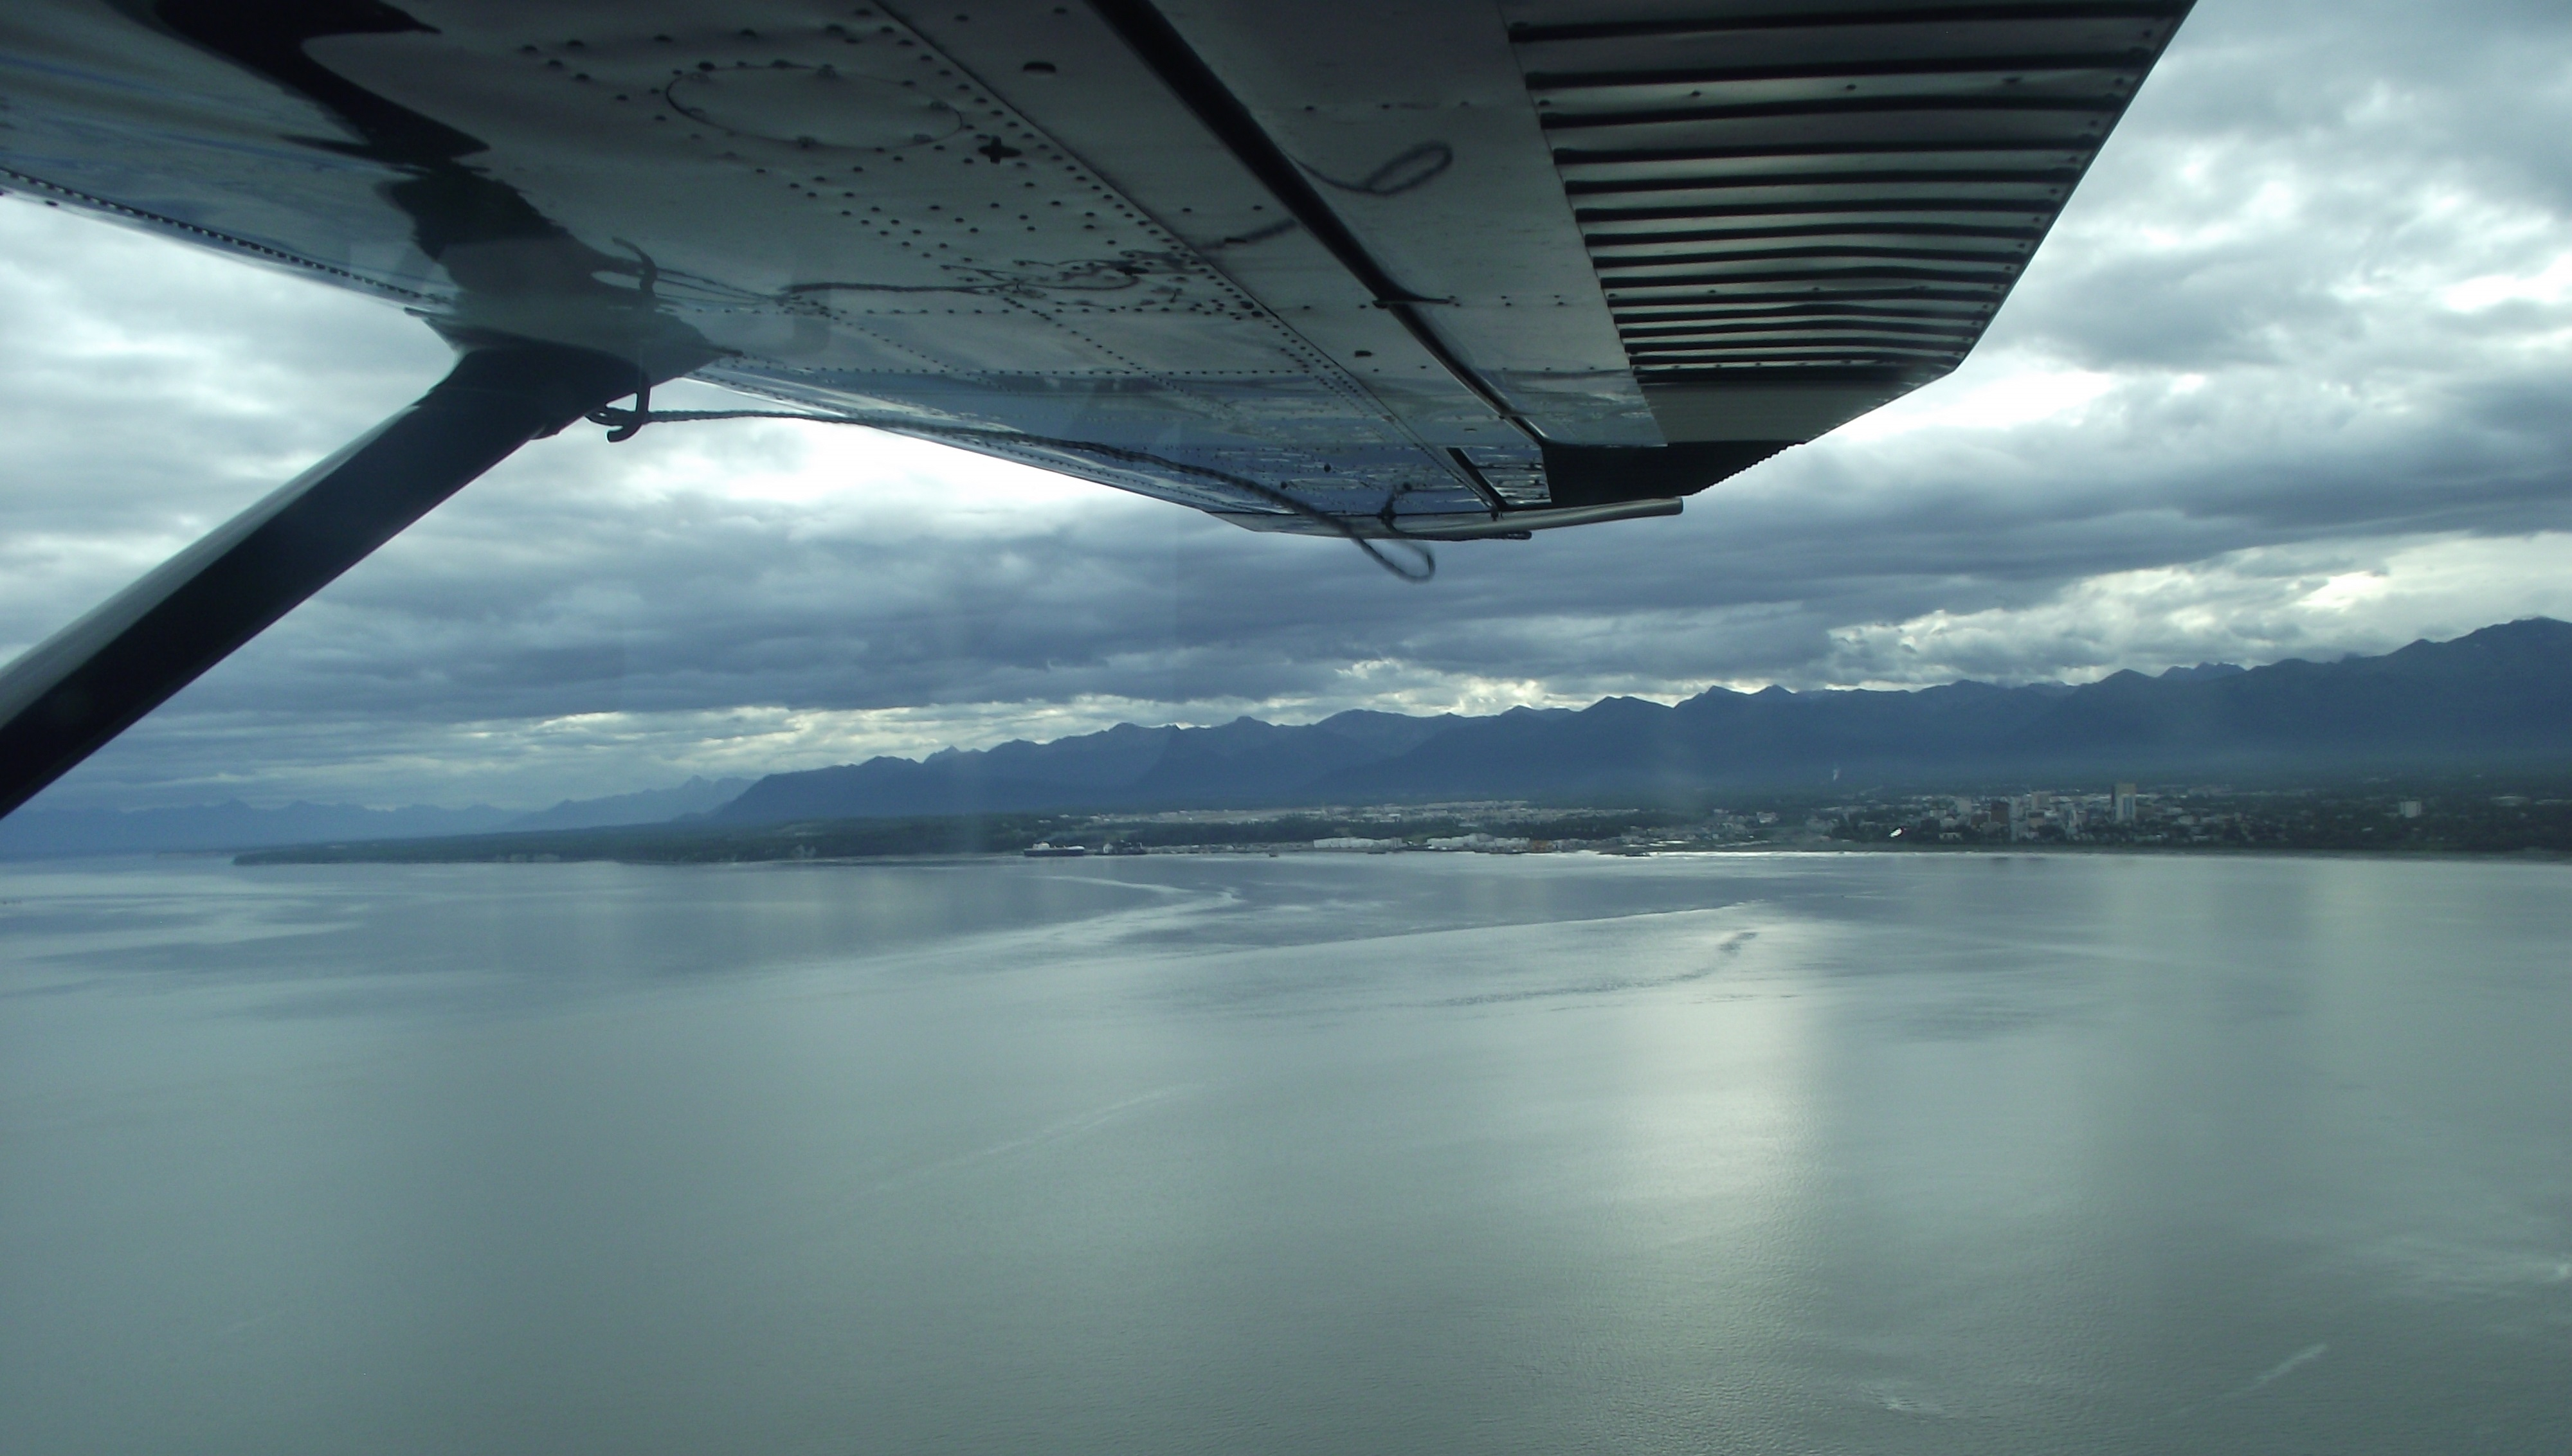 Leaving Anchorage and its Chugach Mountains backdrop, heading across Cook Inlet.